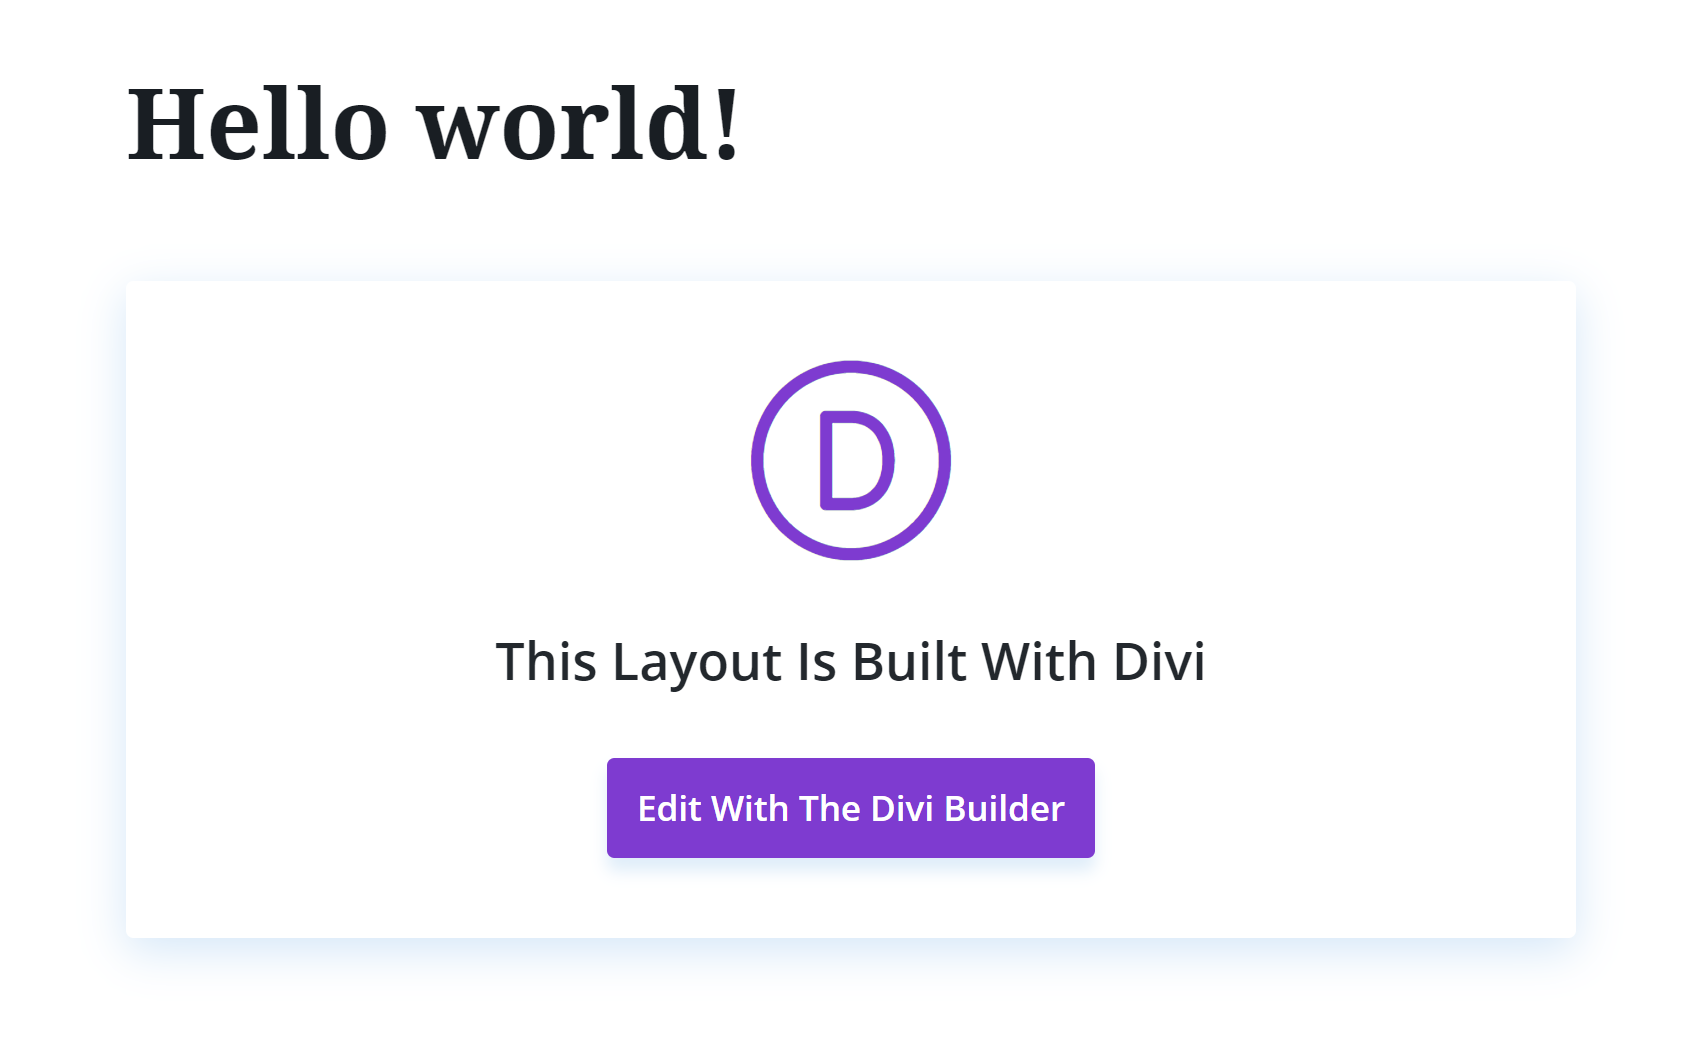 Edit with Divi Builder